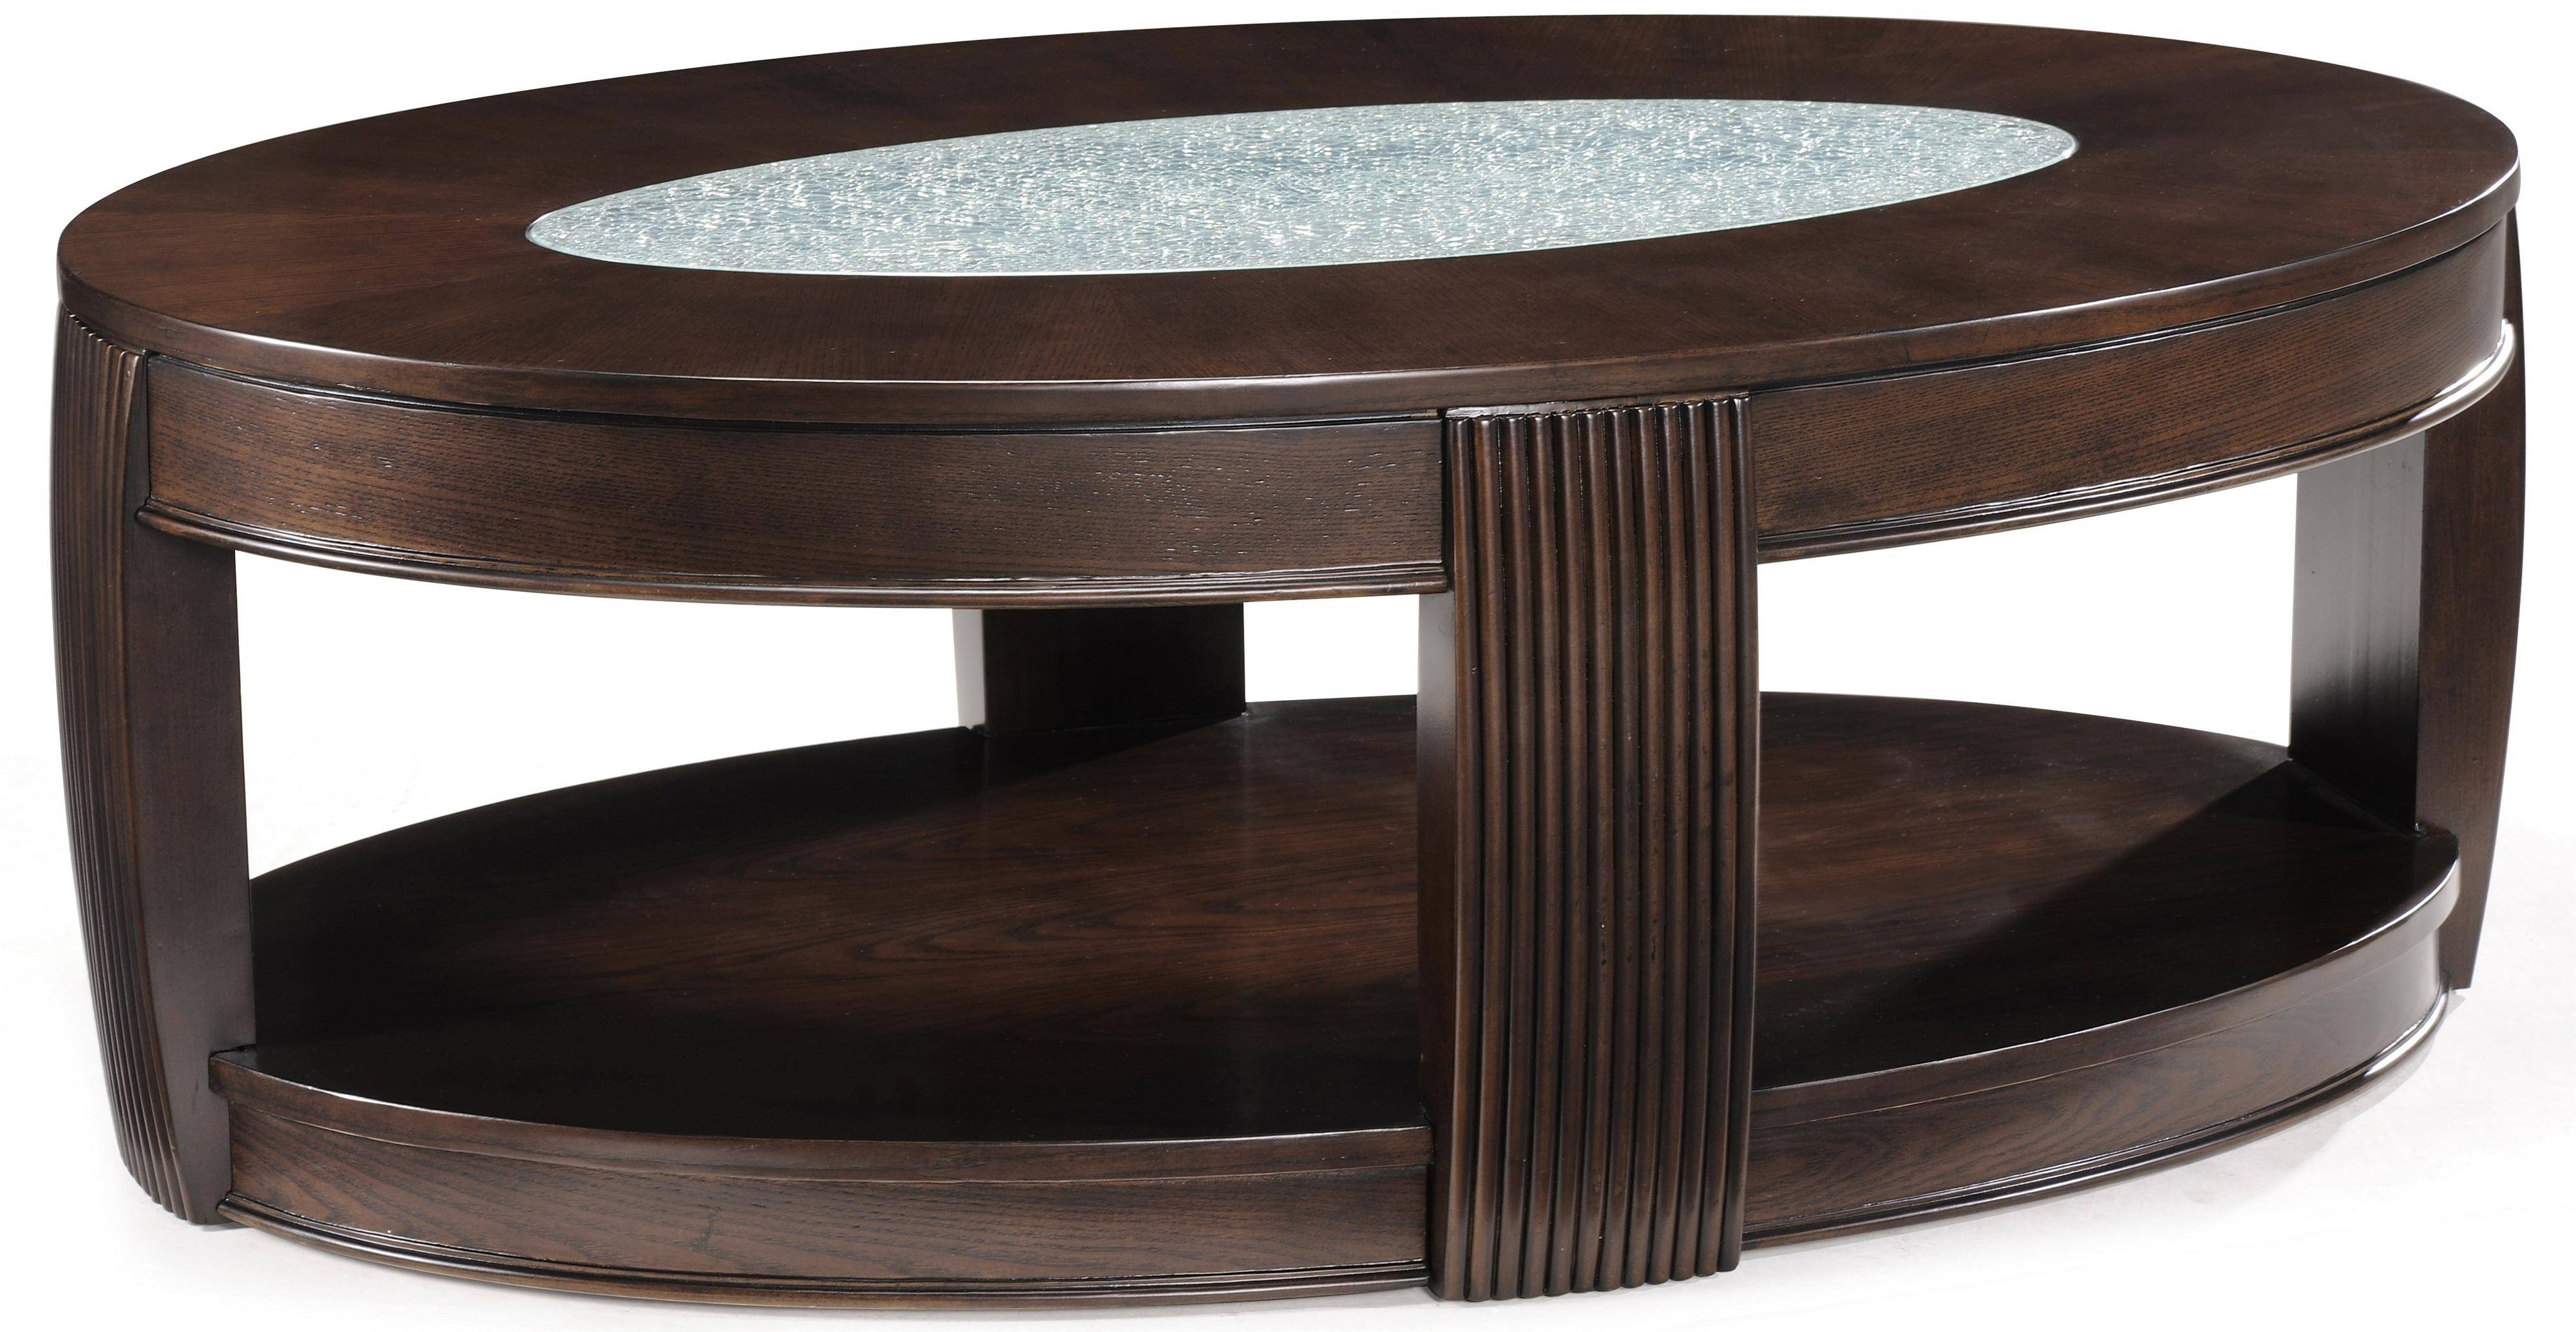 Incredible Oval Coffee Table Ideas – Oval Coffee Tables Living Throughout Oval Gloss Coffee Tables (View 21 of 30)